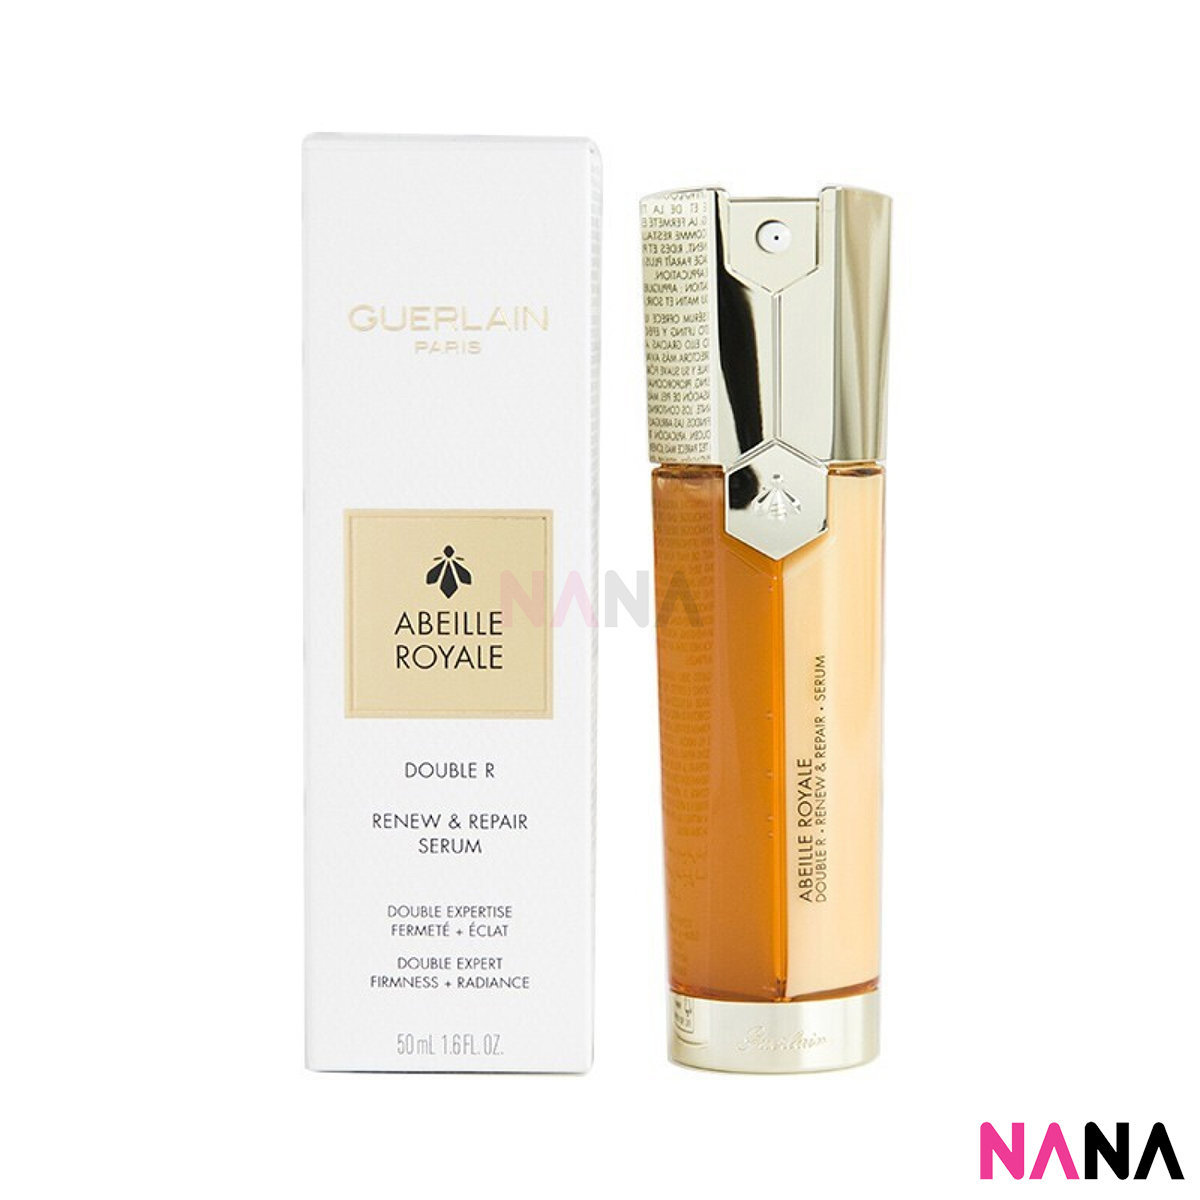 Abeille Royale Double R Renew & Repair Serum 50ml